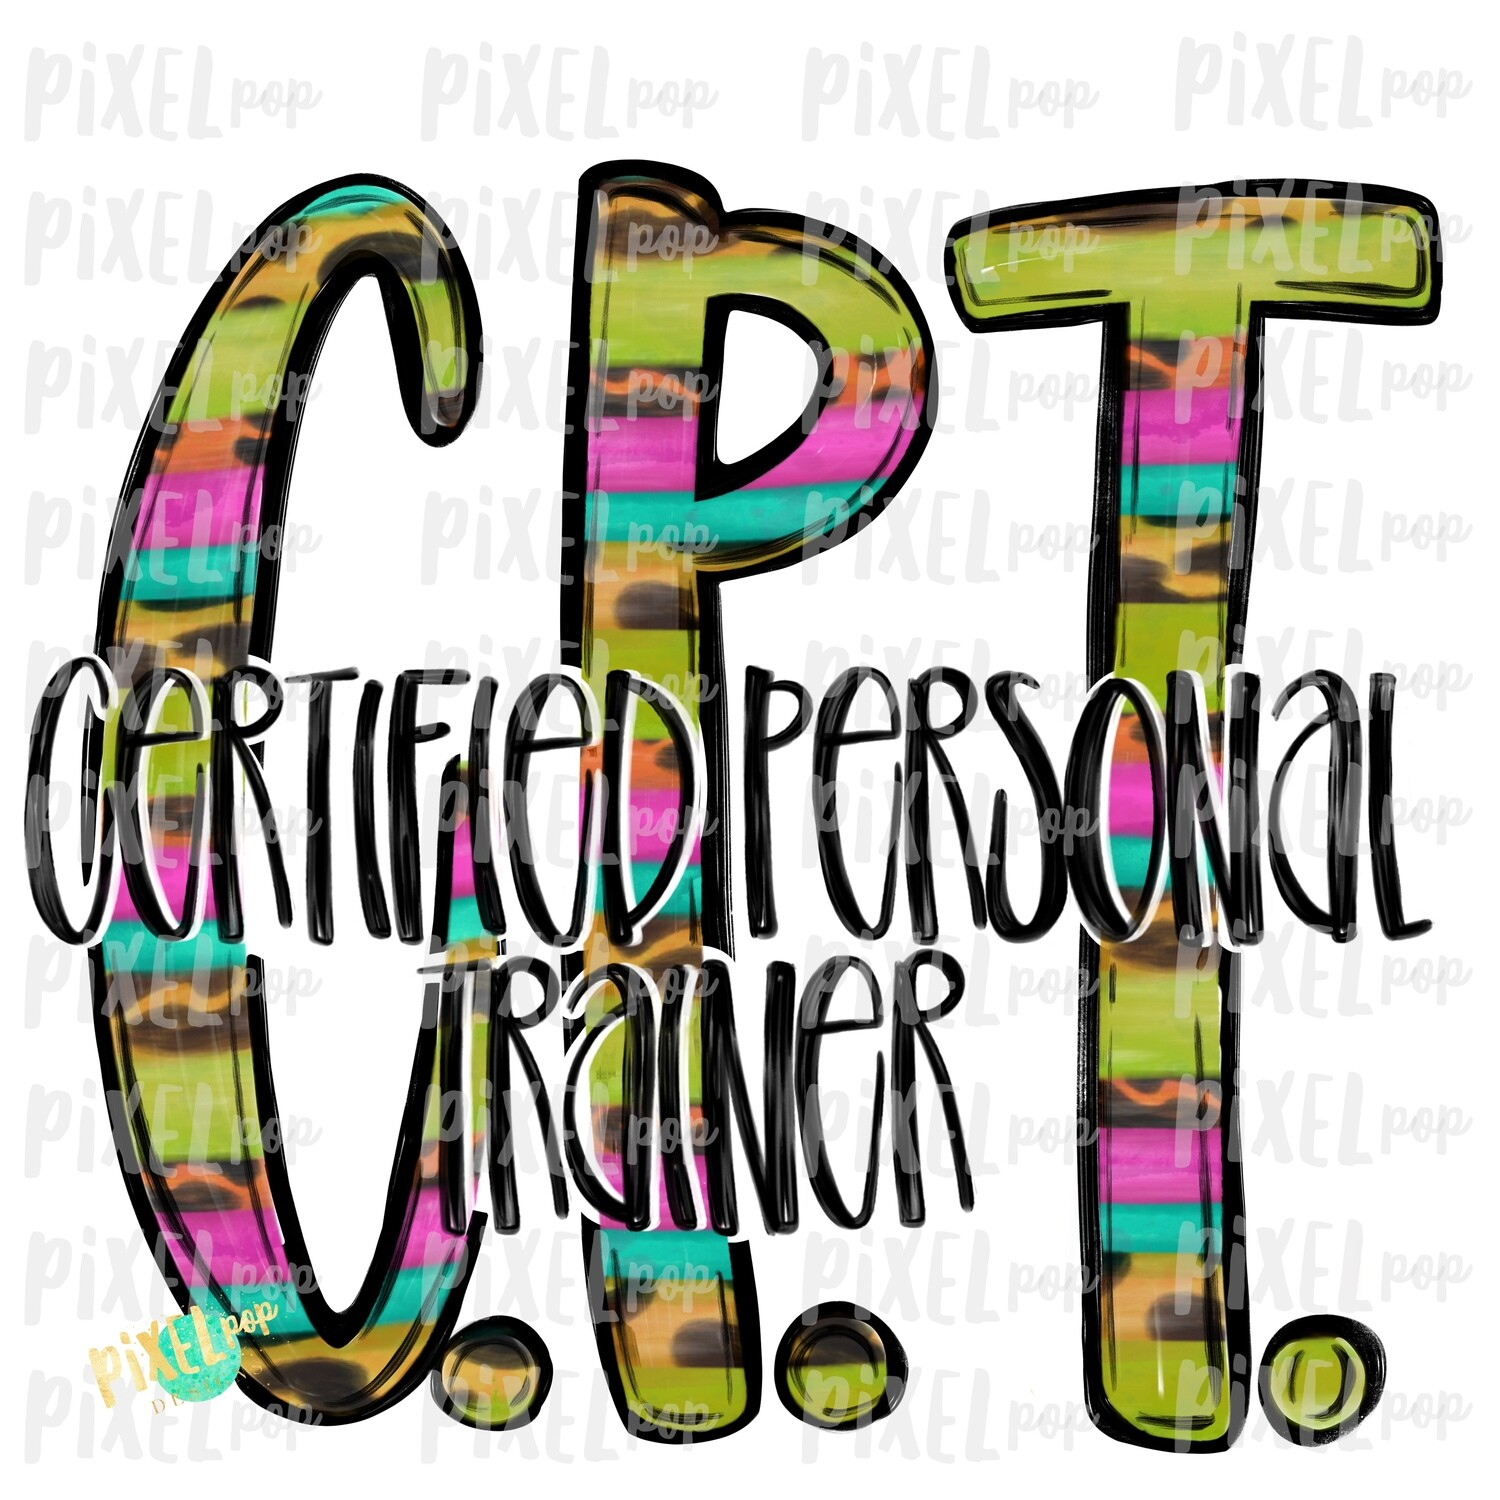 Certified Personal Trainer CPT Bright PNG Design | Sublimation | Hand Drawn Art | Nursing PNG | Medical Clipart | Digital Download | Art